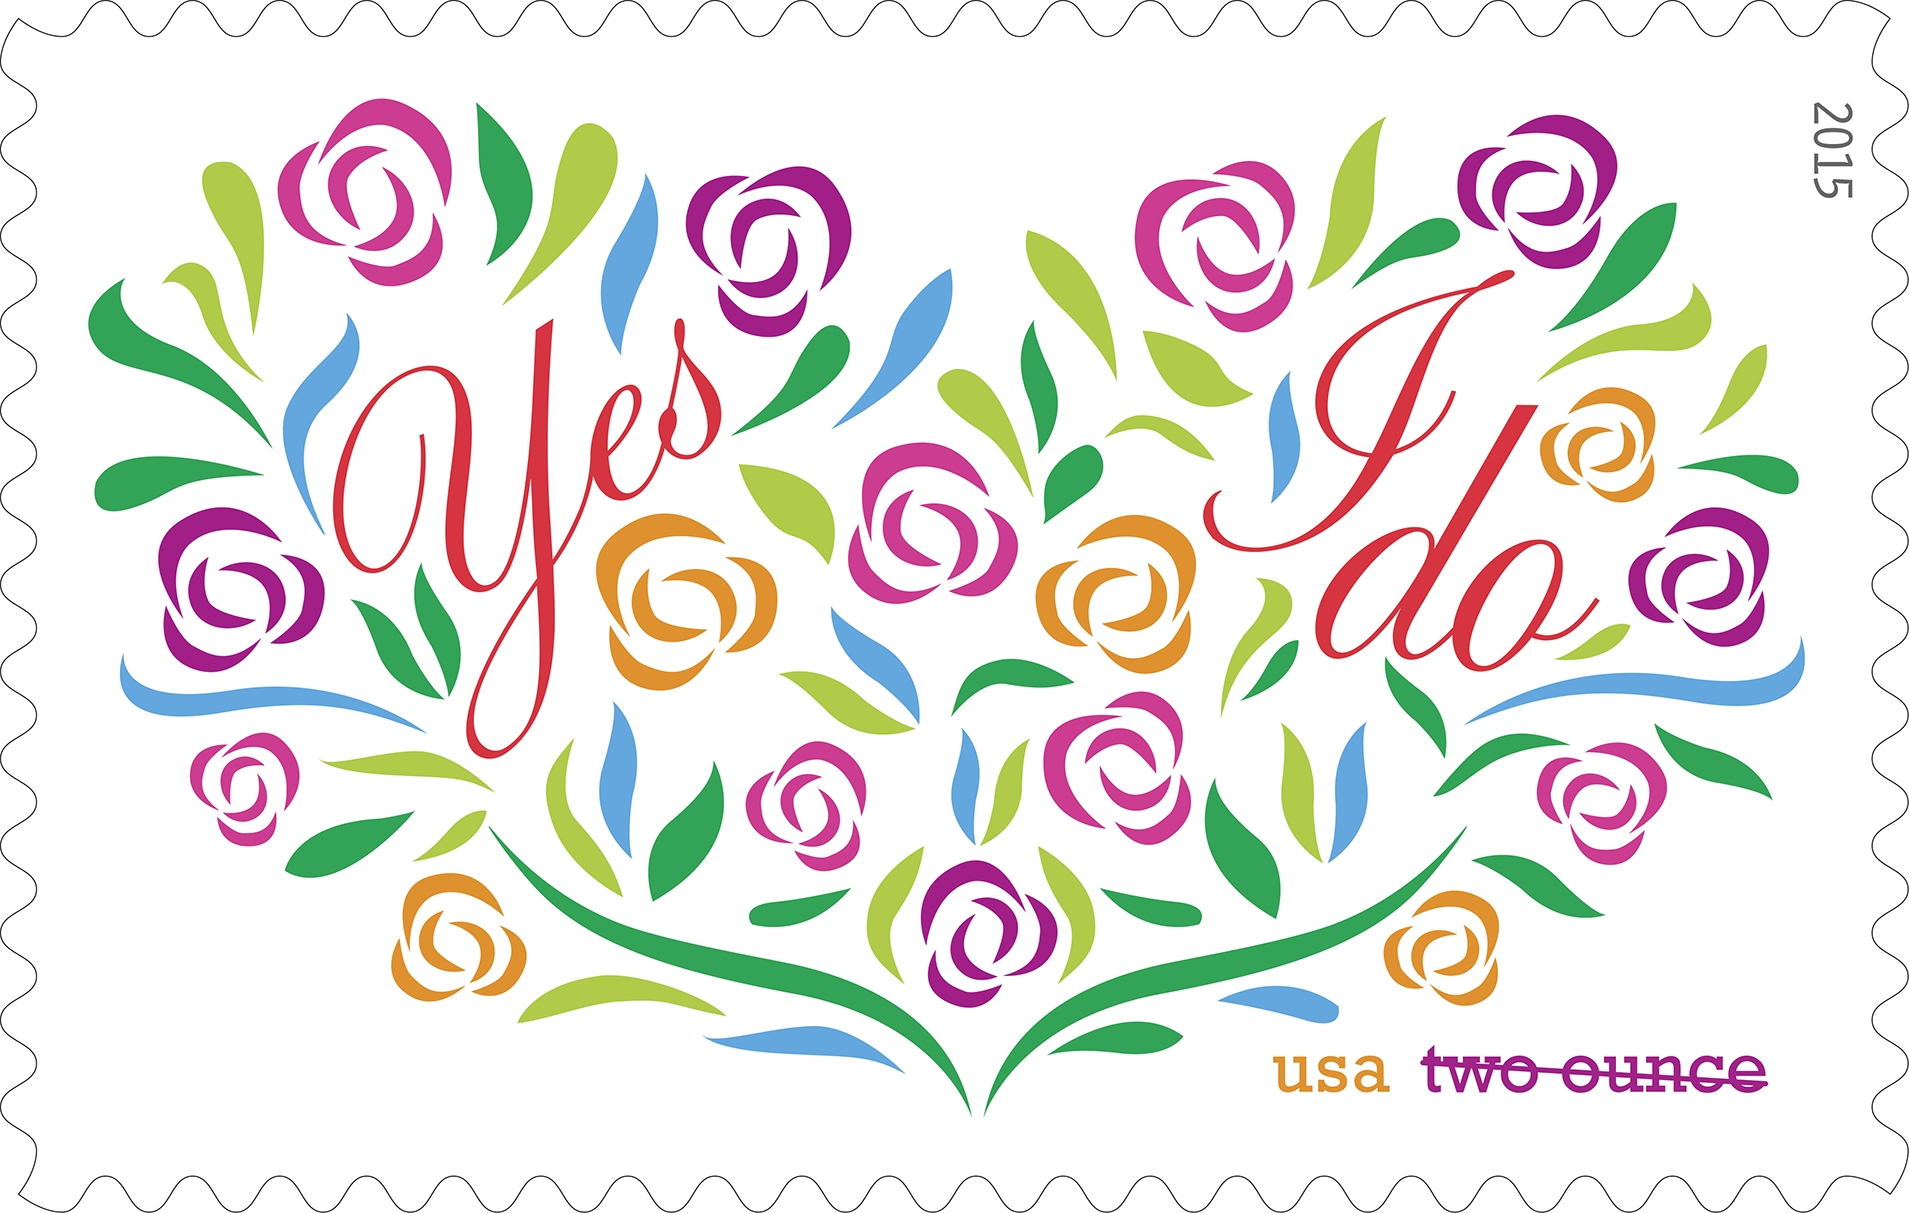 uspsnewissues wedding postage stamps Click to see larger image